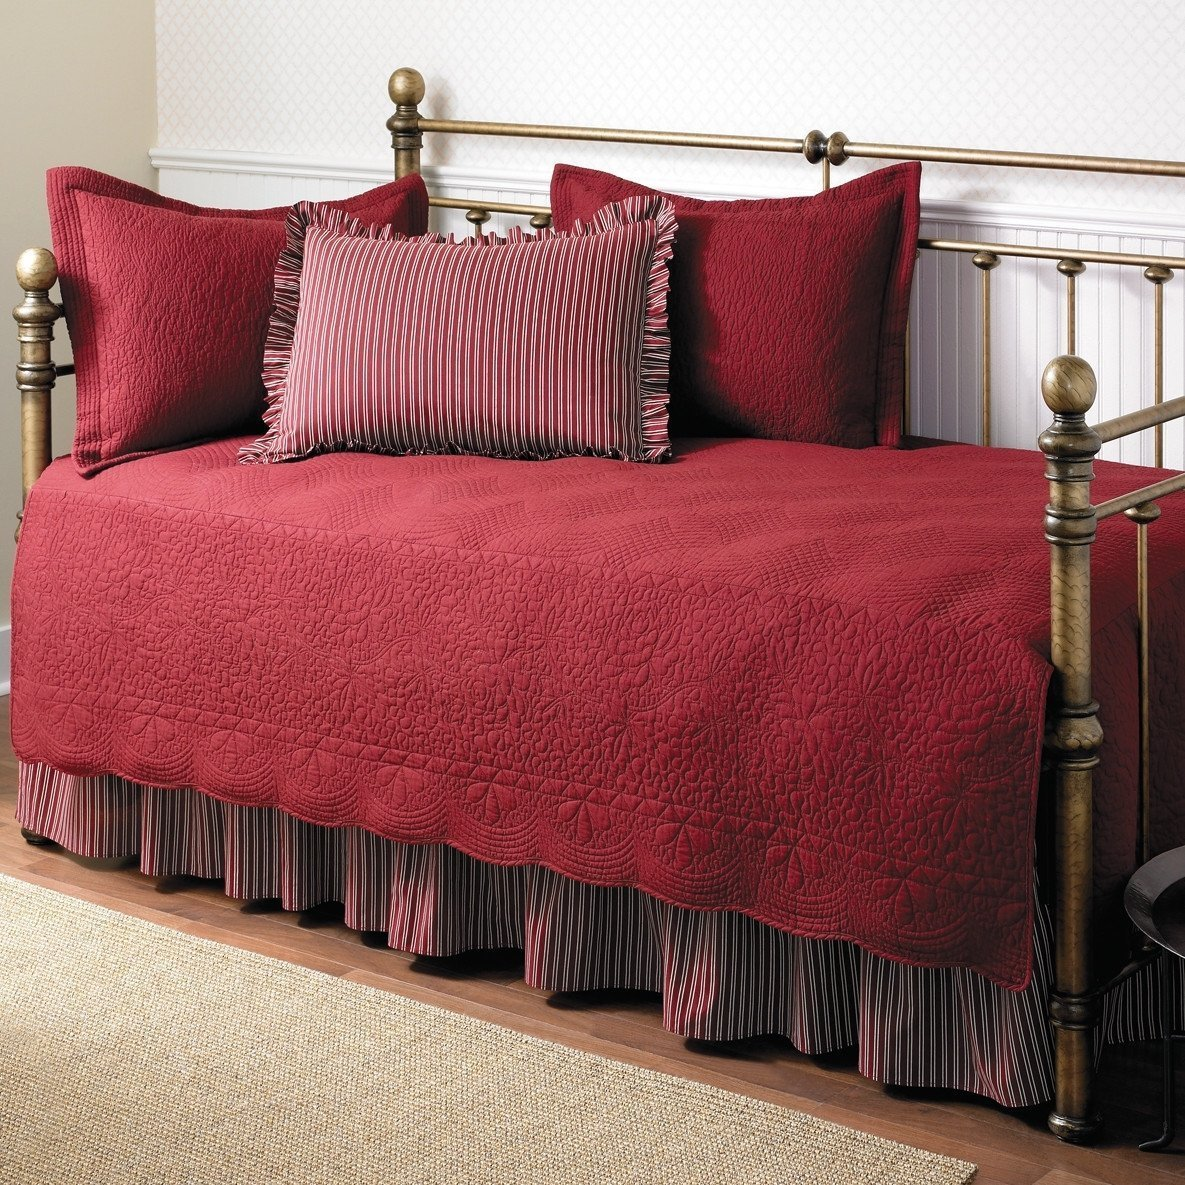 Daybed Covers And Bolsters Home Furniture Design